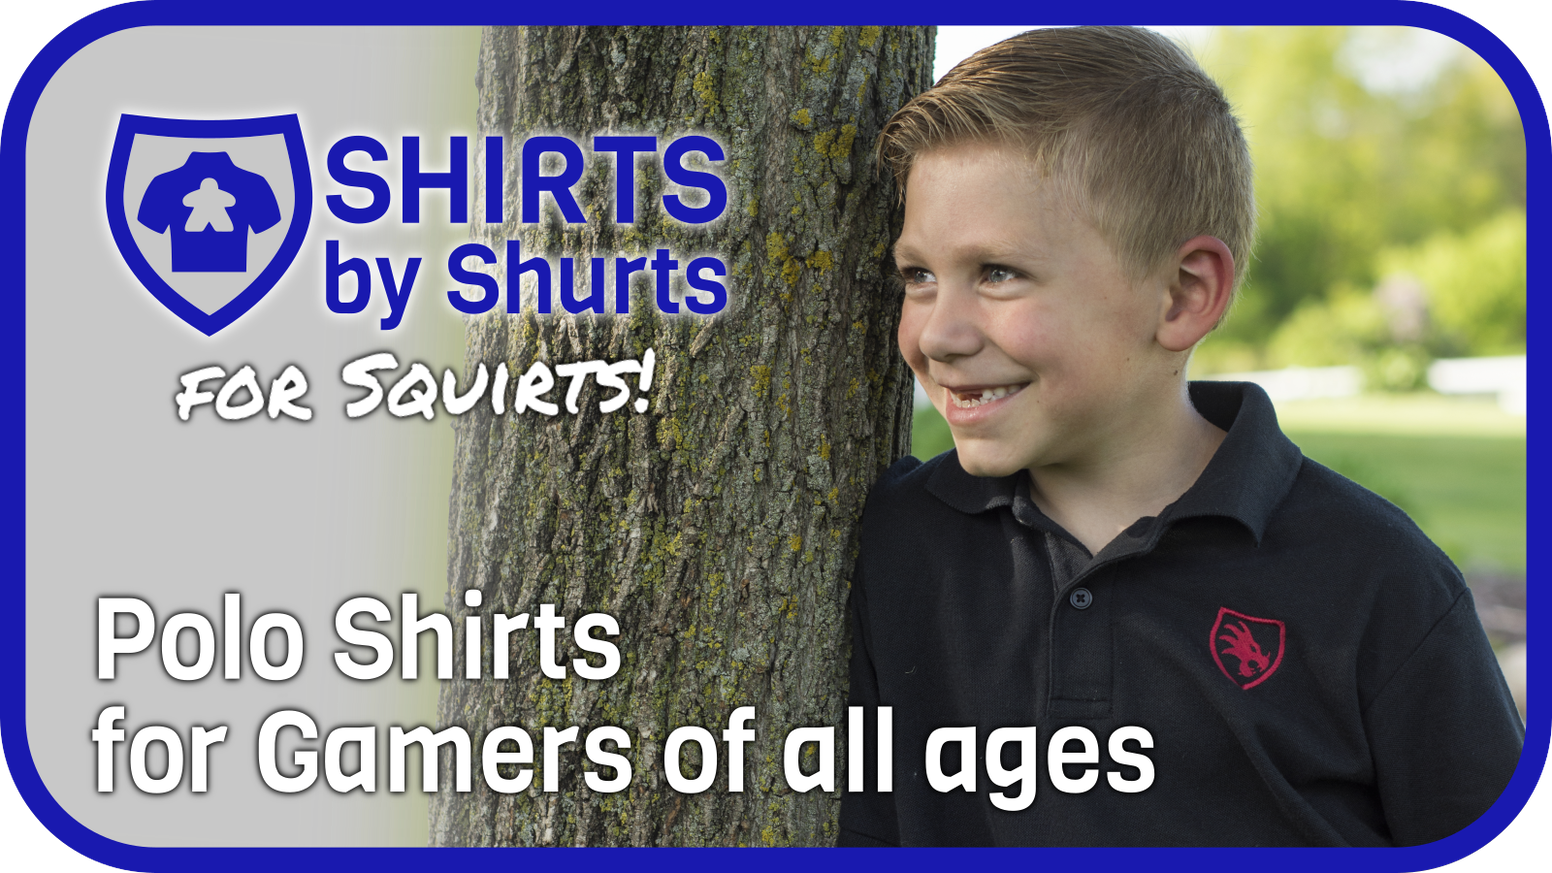 Shirts by Shurts for Squirts.  Polo Shirts for Gamers is now expanding to Youth Sizes.